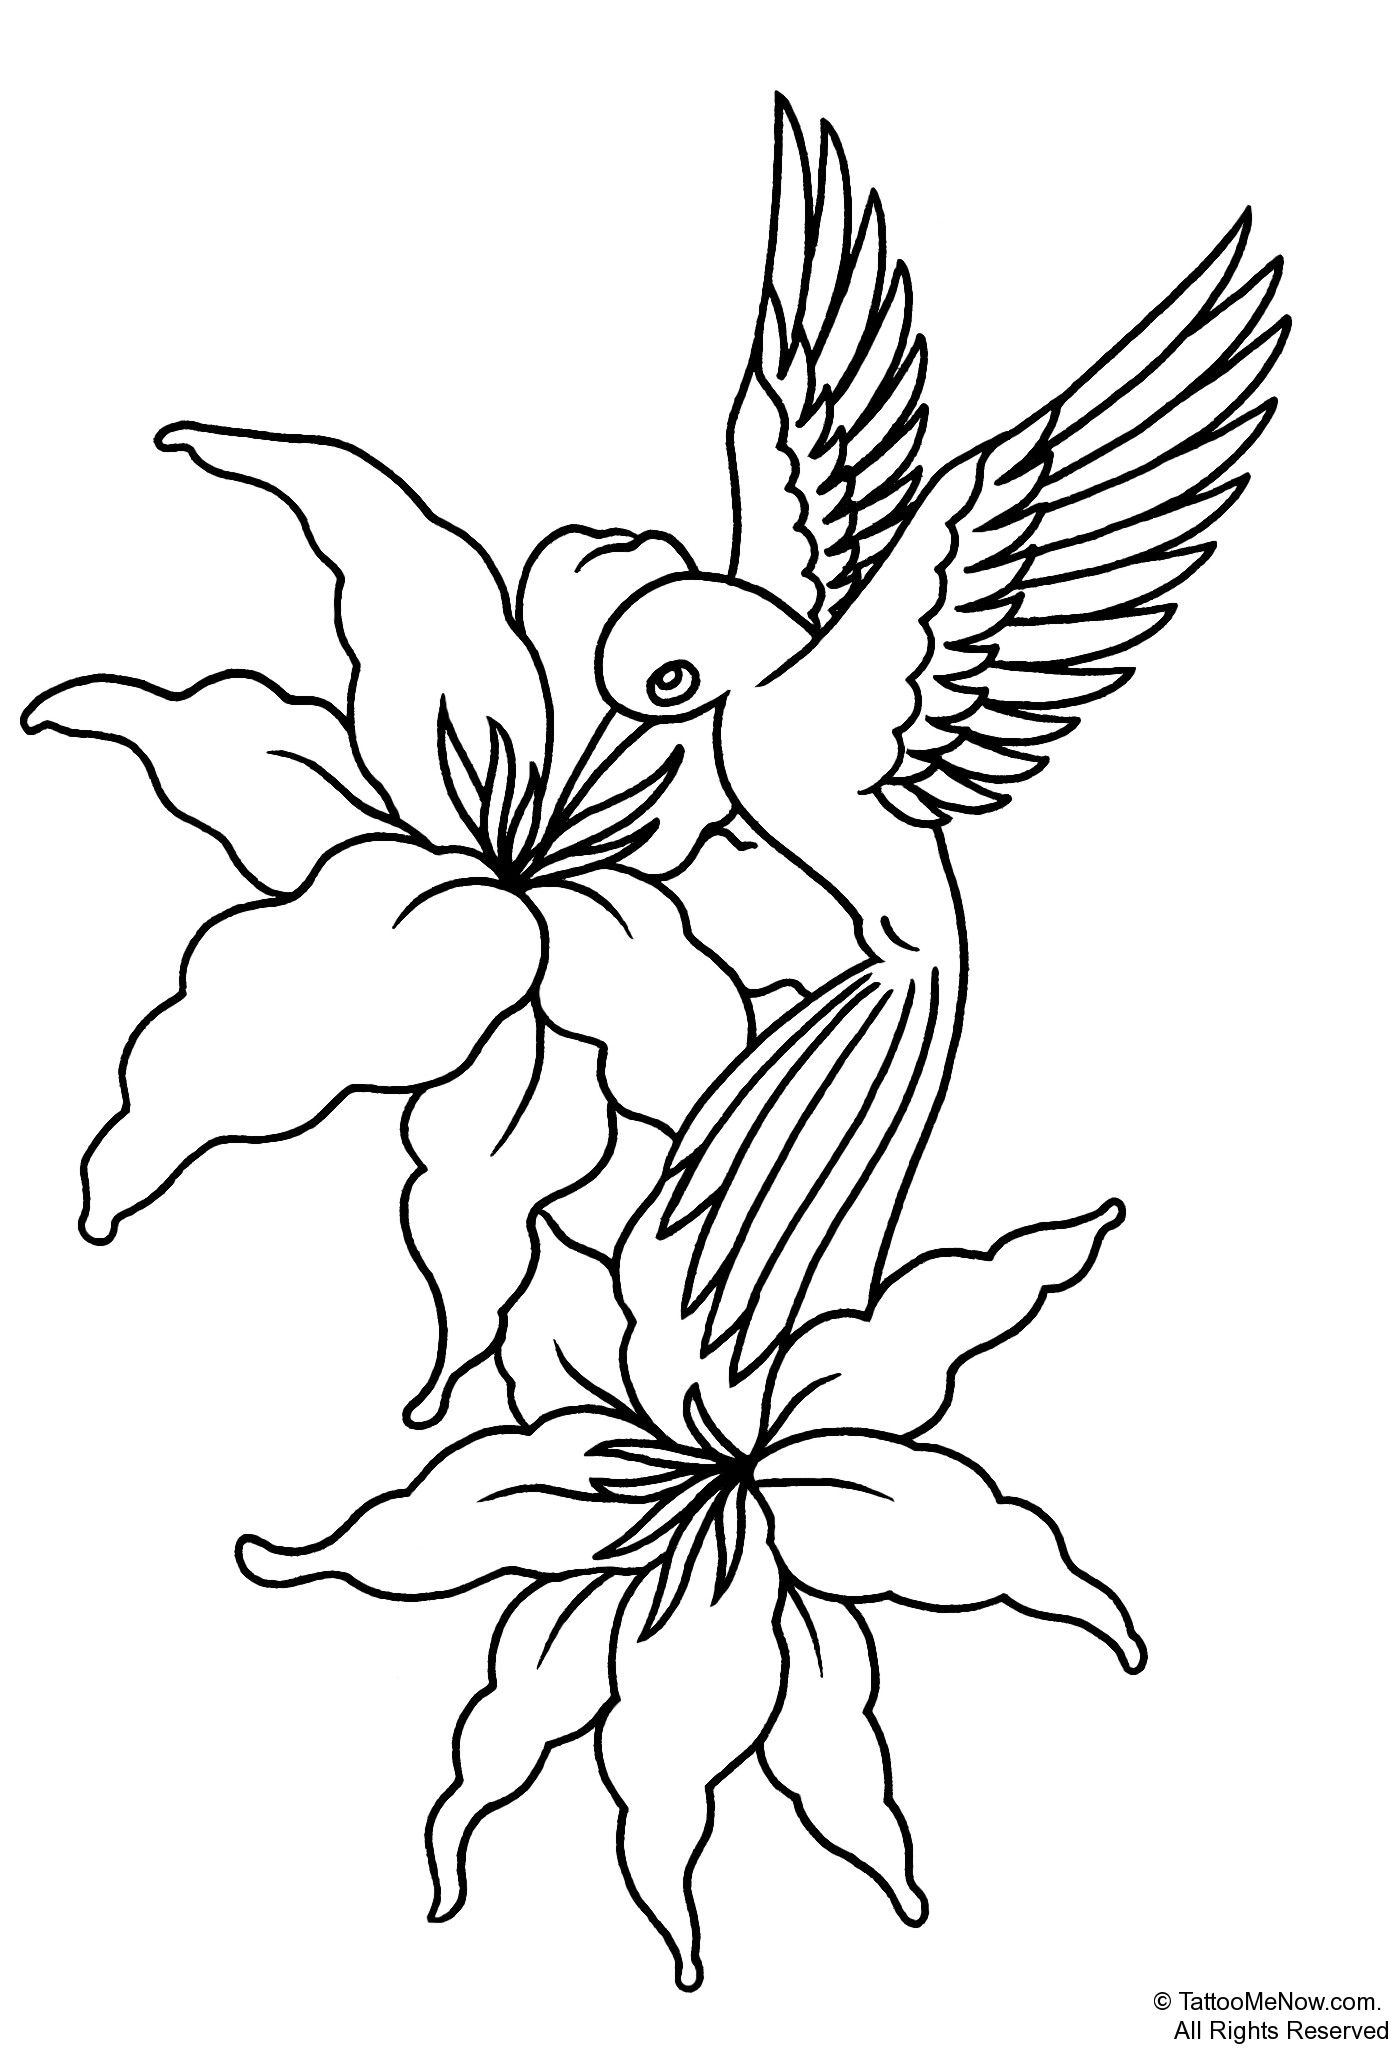 Divine image regarding printable tattoo design